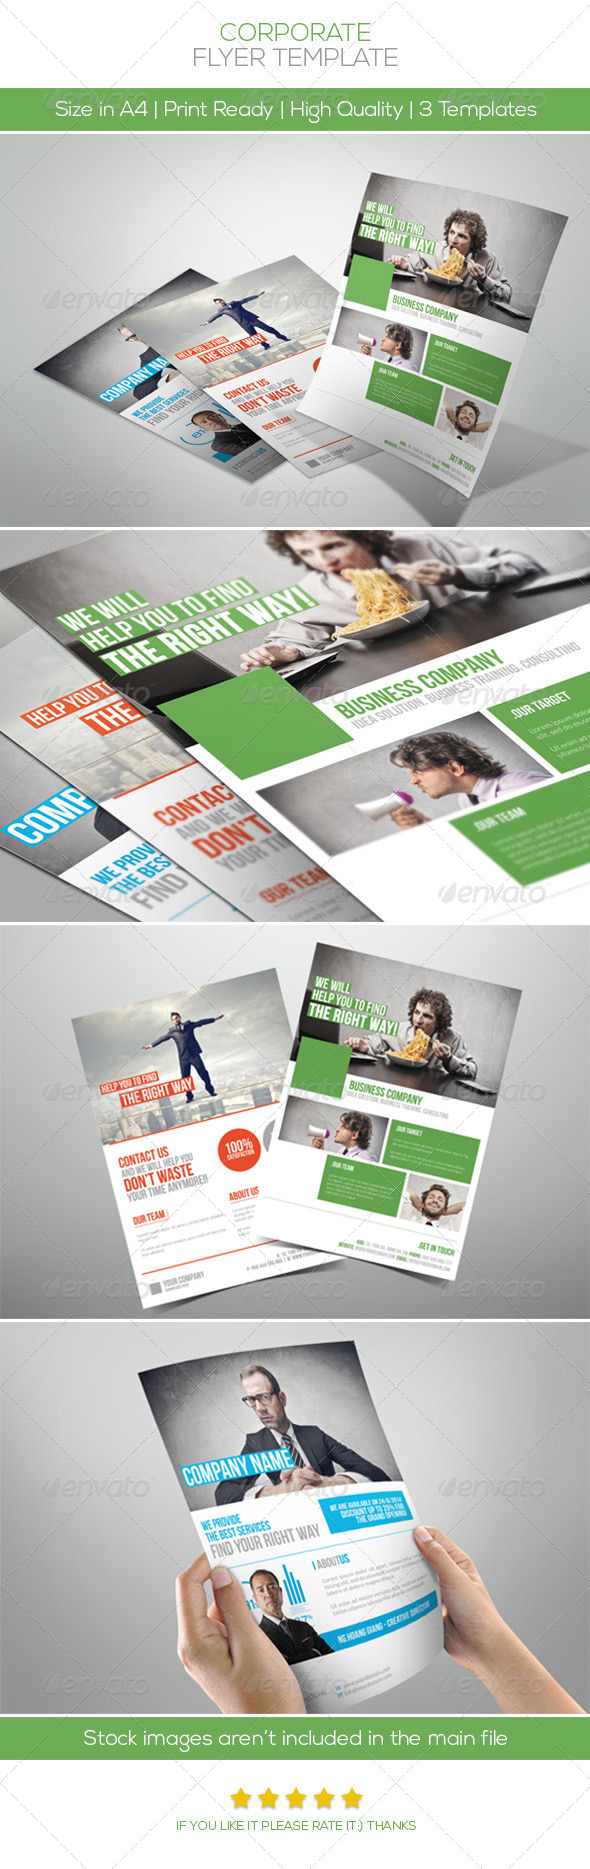 Premium Corporate Flyers Vol.3 - Corporate Flyers